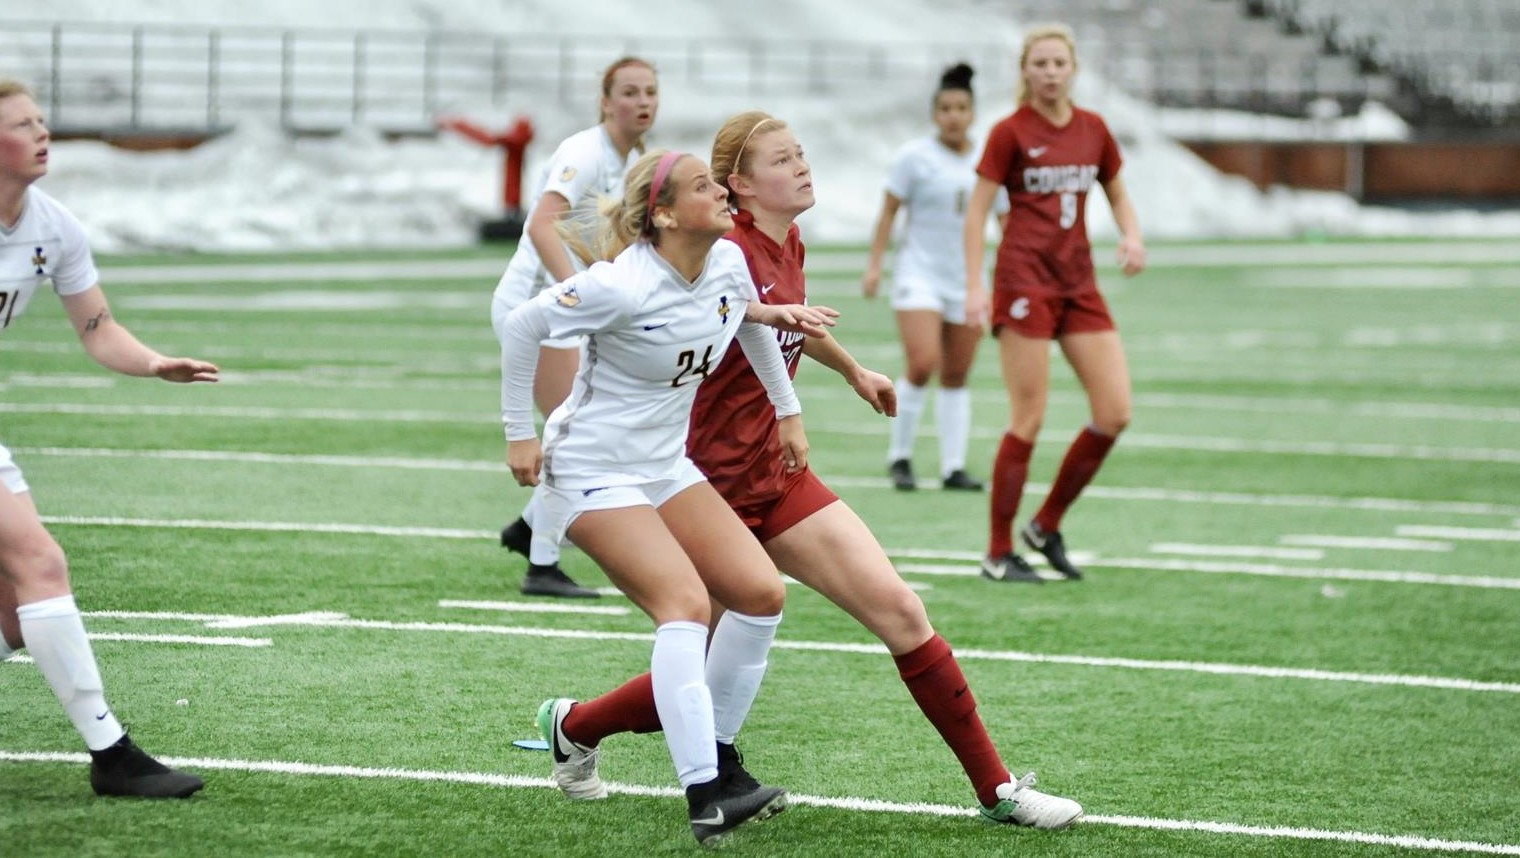 eee9ba4f676 Second Half Hat Trick Nets WSU The Spring Win. March 24, 2019 / Women's  Soccer